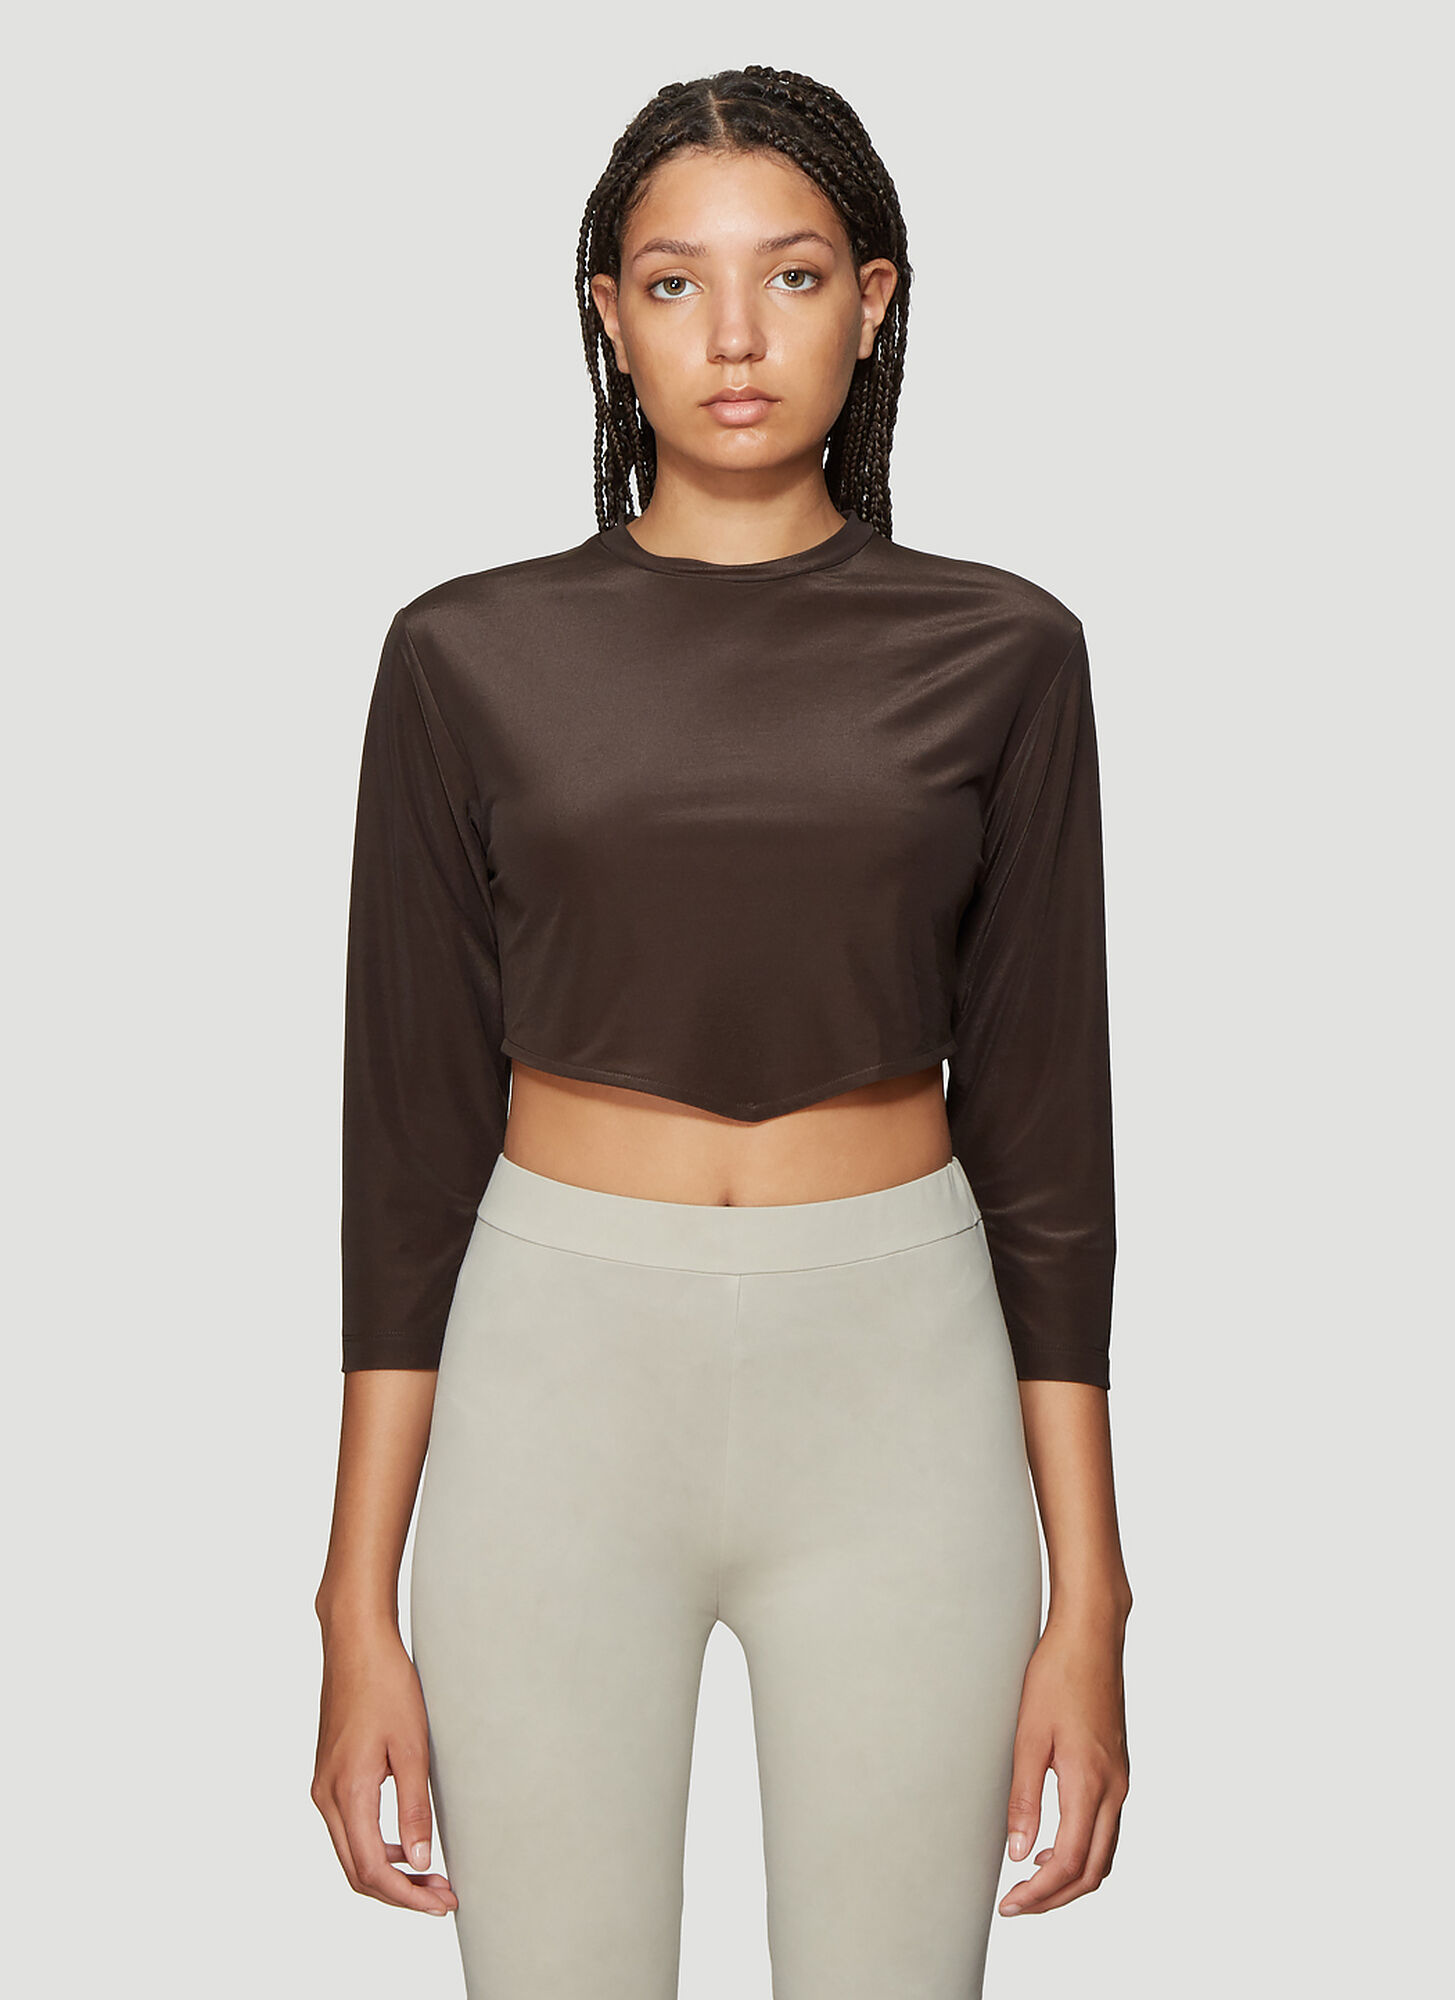 Roni Ilan Cropped Top in Brown